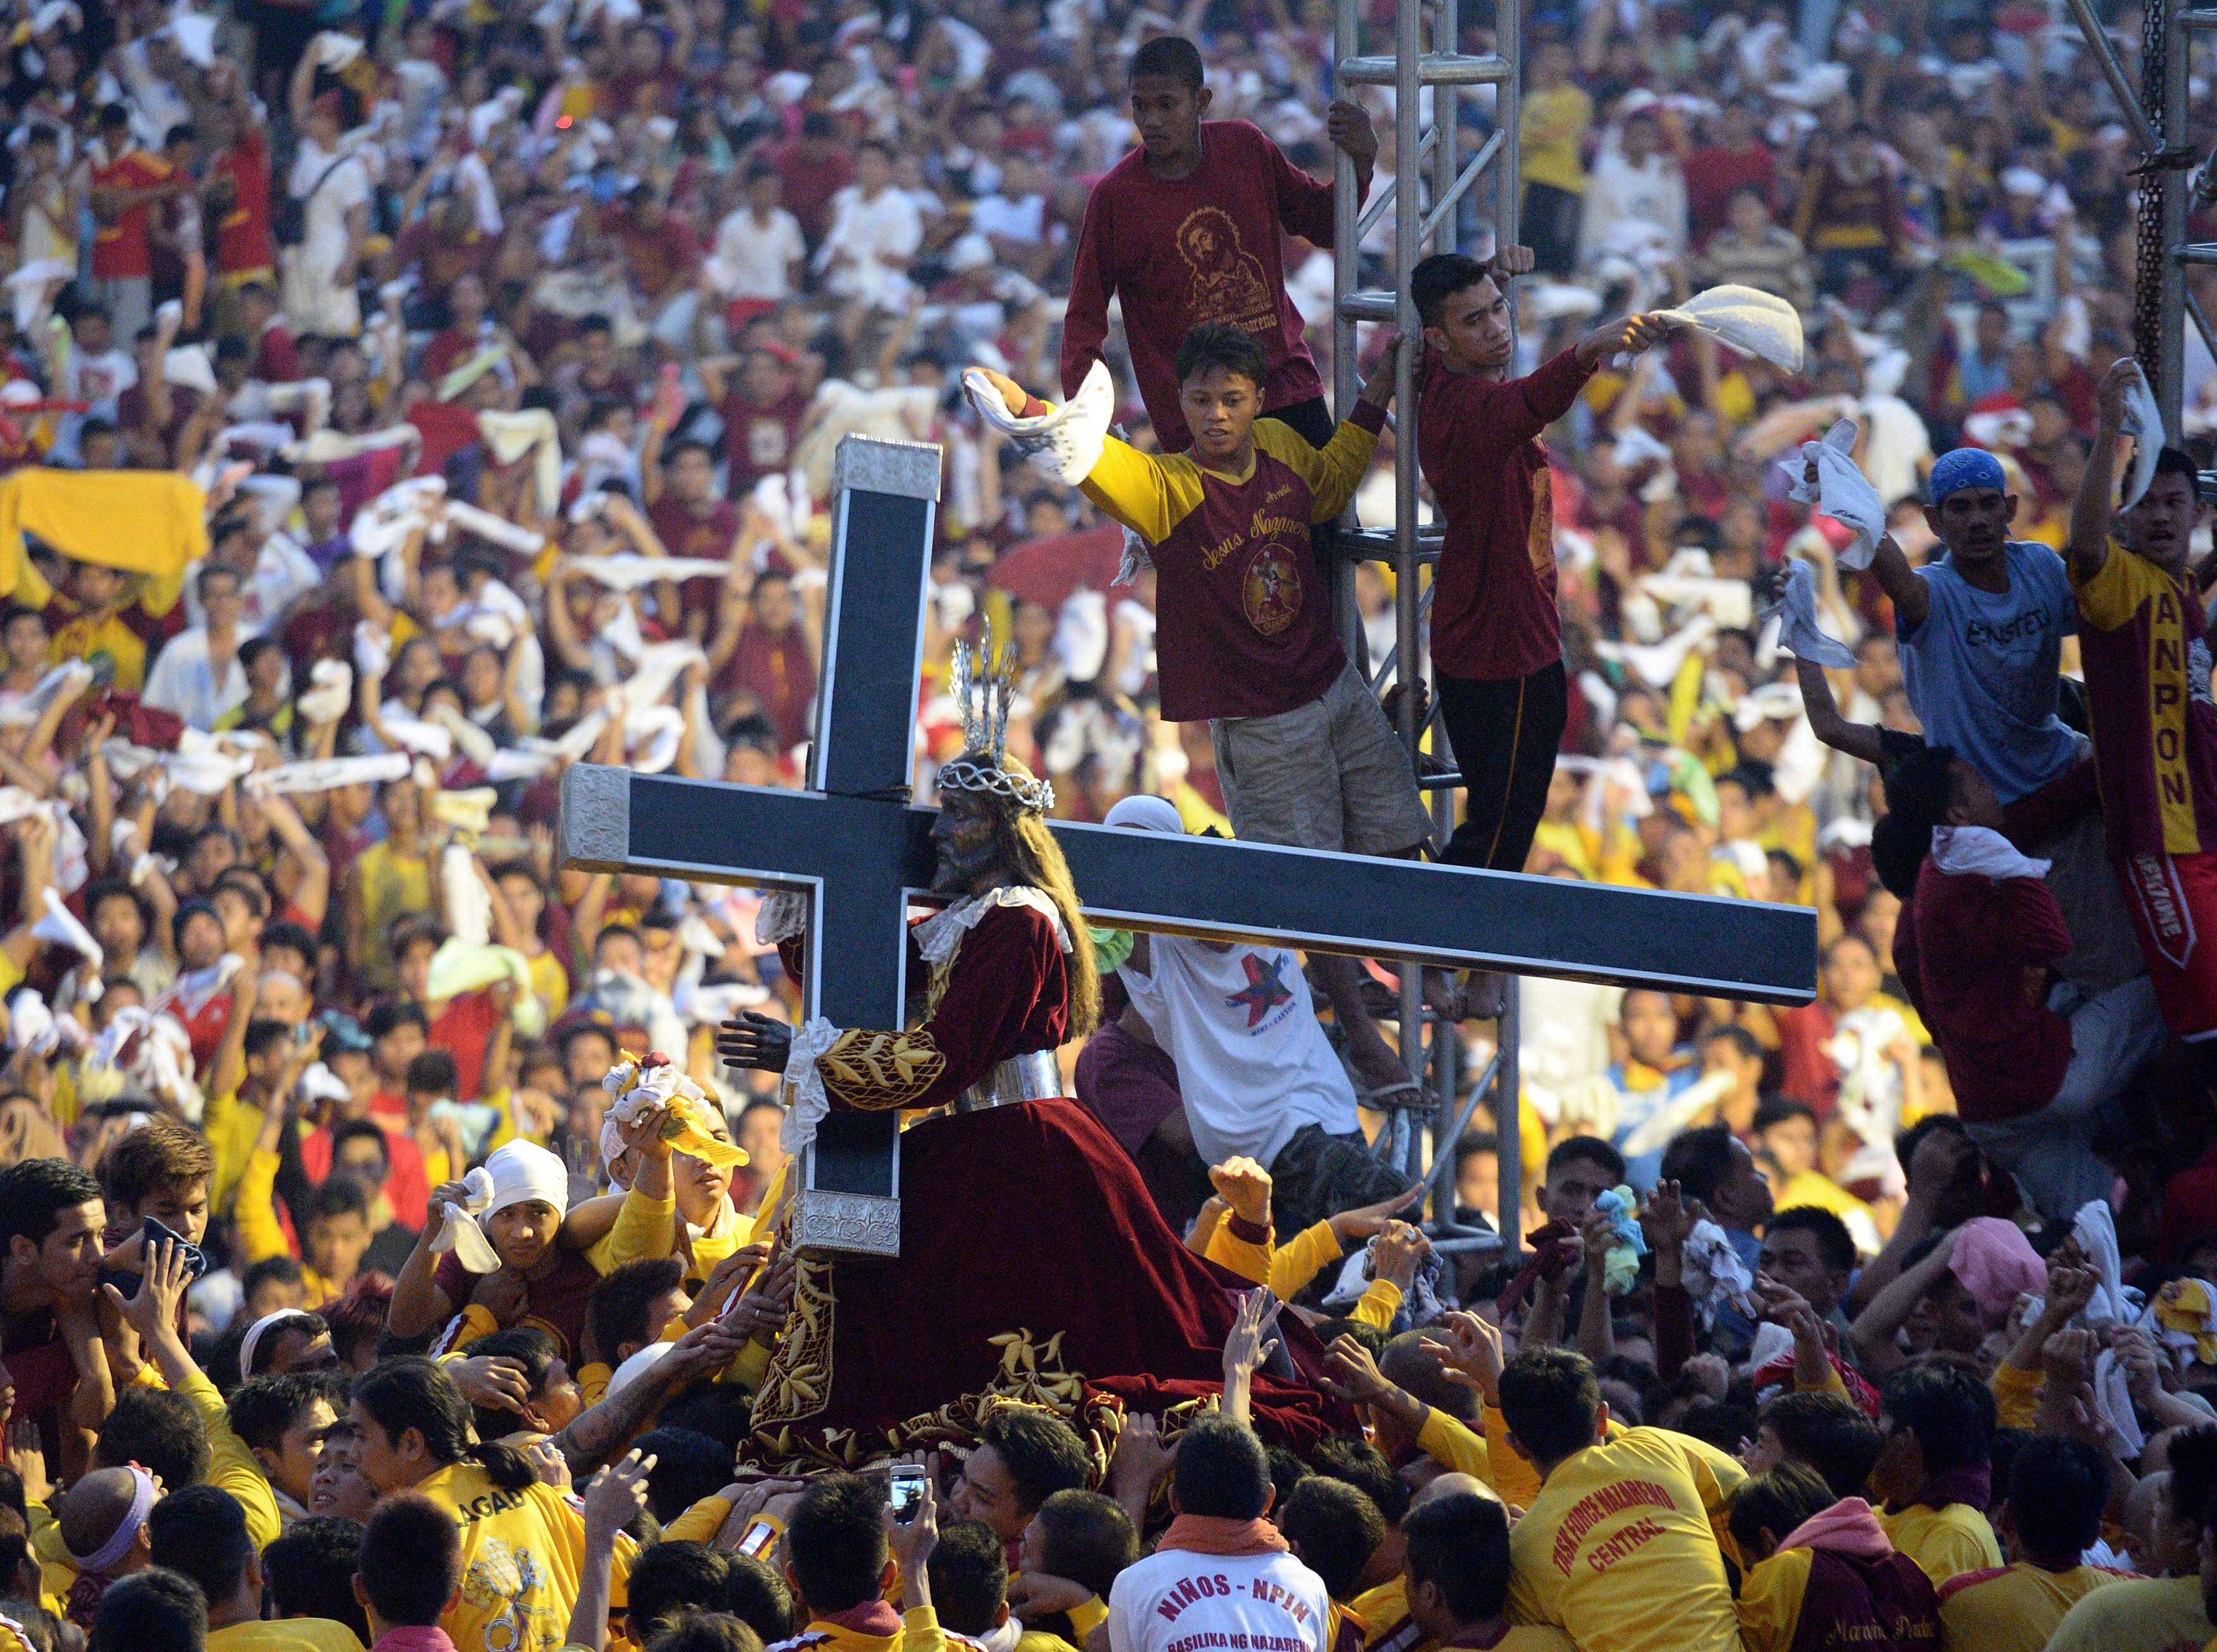 Millions Join the Procession of the Black Nazarene in Manila | Time